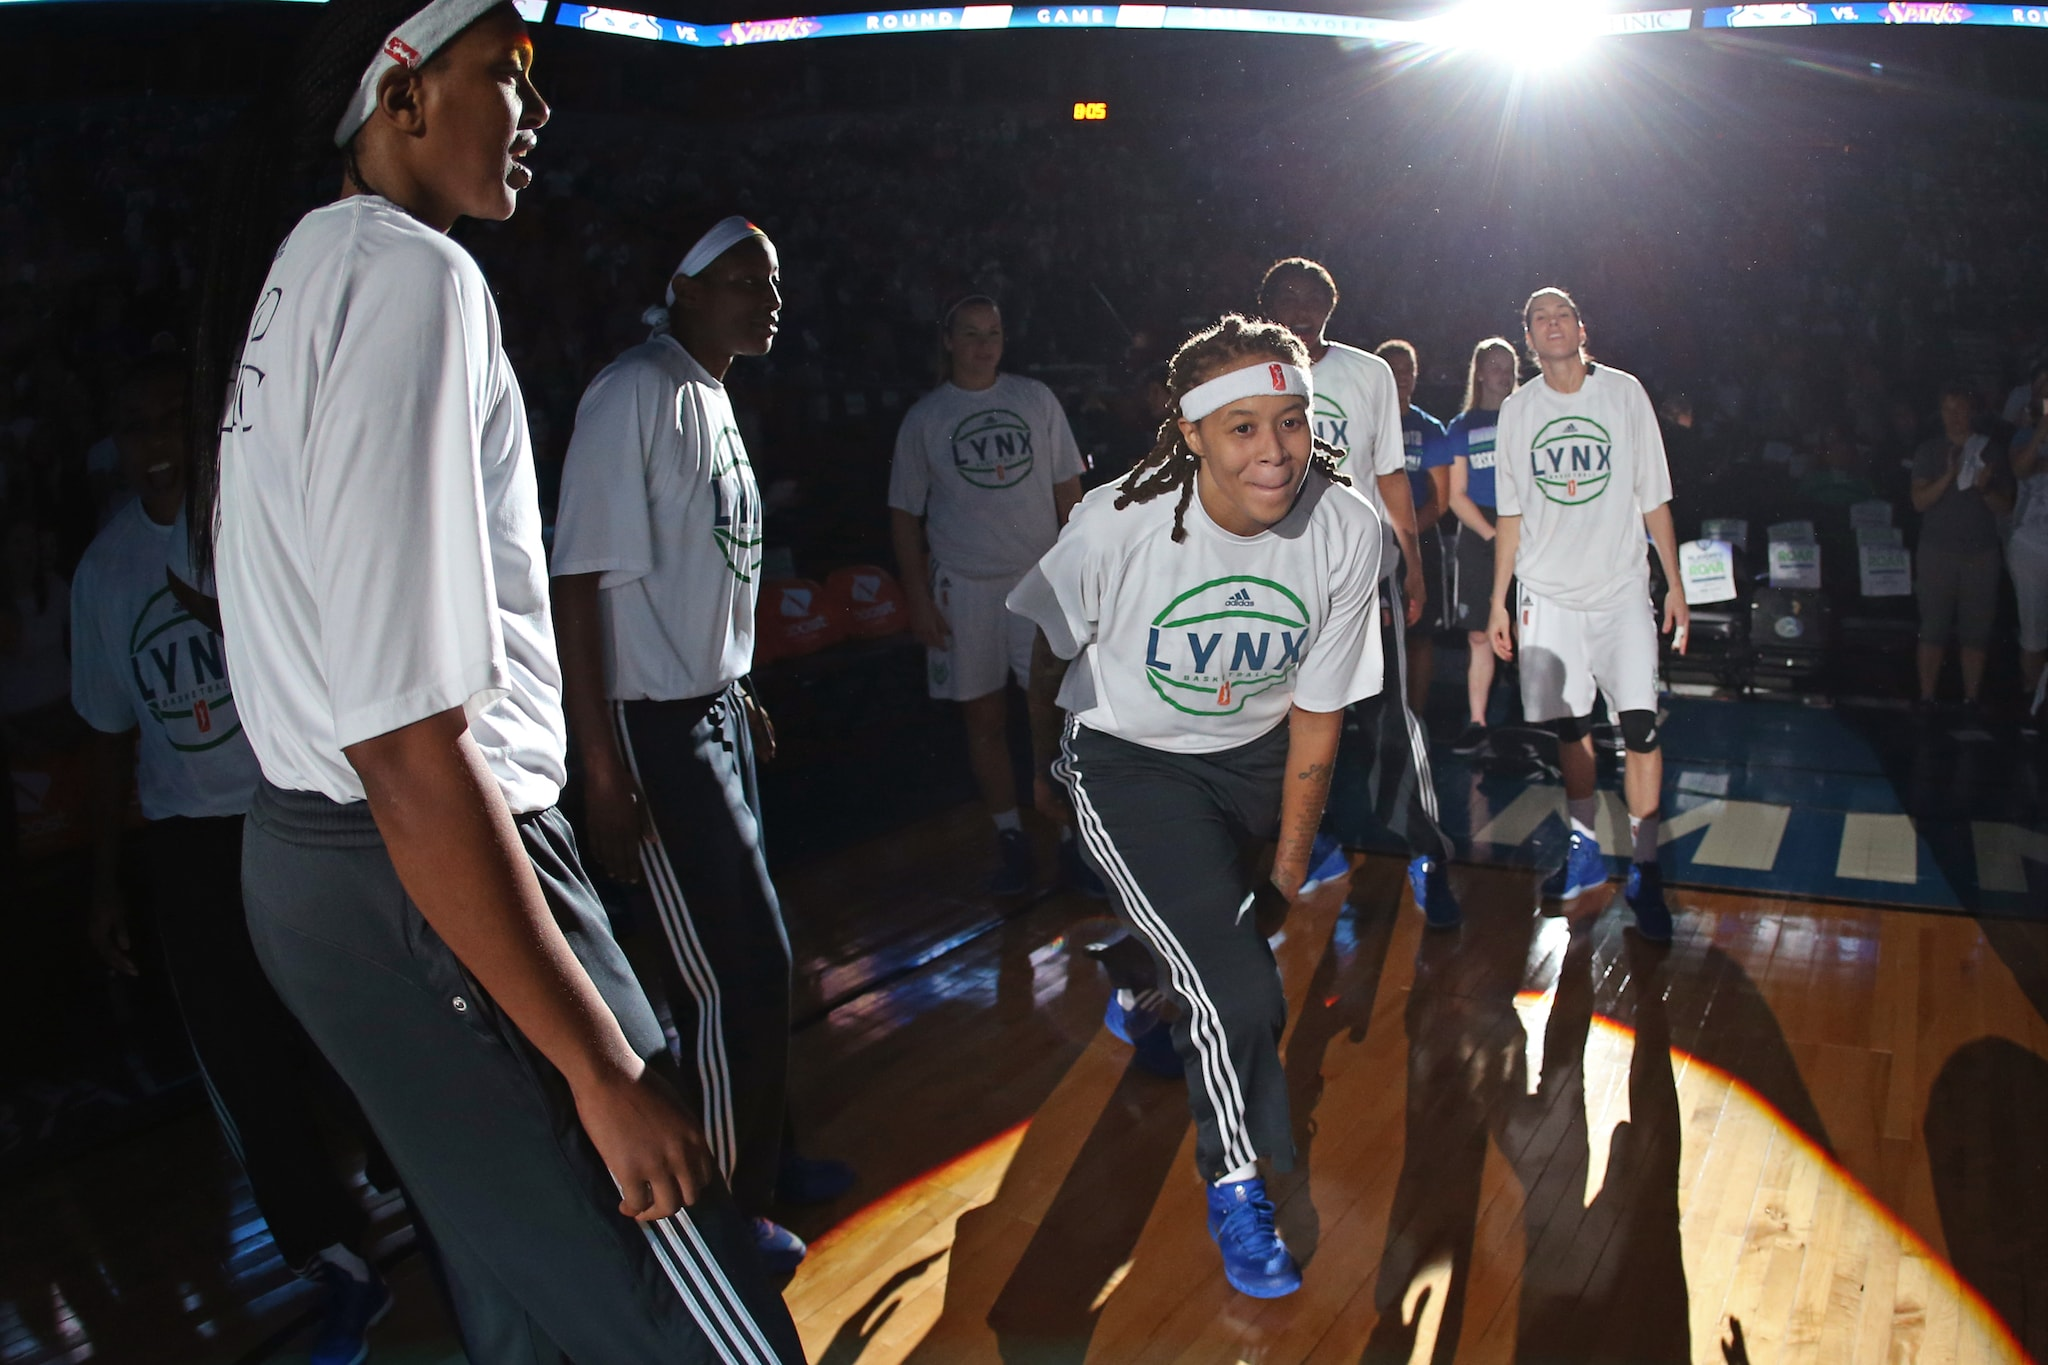 MINNEAPOLIS, MN - SEPTEMBER 22:  Seimone Augustus #33 of the Minnesota Lynx runs out before Game Three of the WNBA Western Conference Semifinal against the Los Angeles Sparks on September 22, 2015 at Target Center in Minneapolis, Minnesota. NOTE TO USER: User expressly acknowledges and agrees that, by downloading and or using this Photograph, user is consenting to the terms and conditions of the Getty Images License Agreement. Mandatory Copyright Notice: Copyright 2015 NBAE (Photo by David Sherman/NBAE via Getty Images)